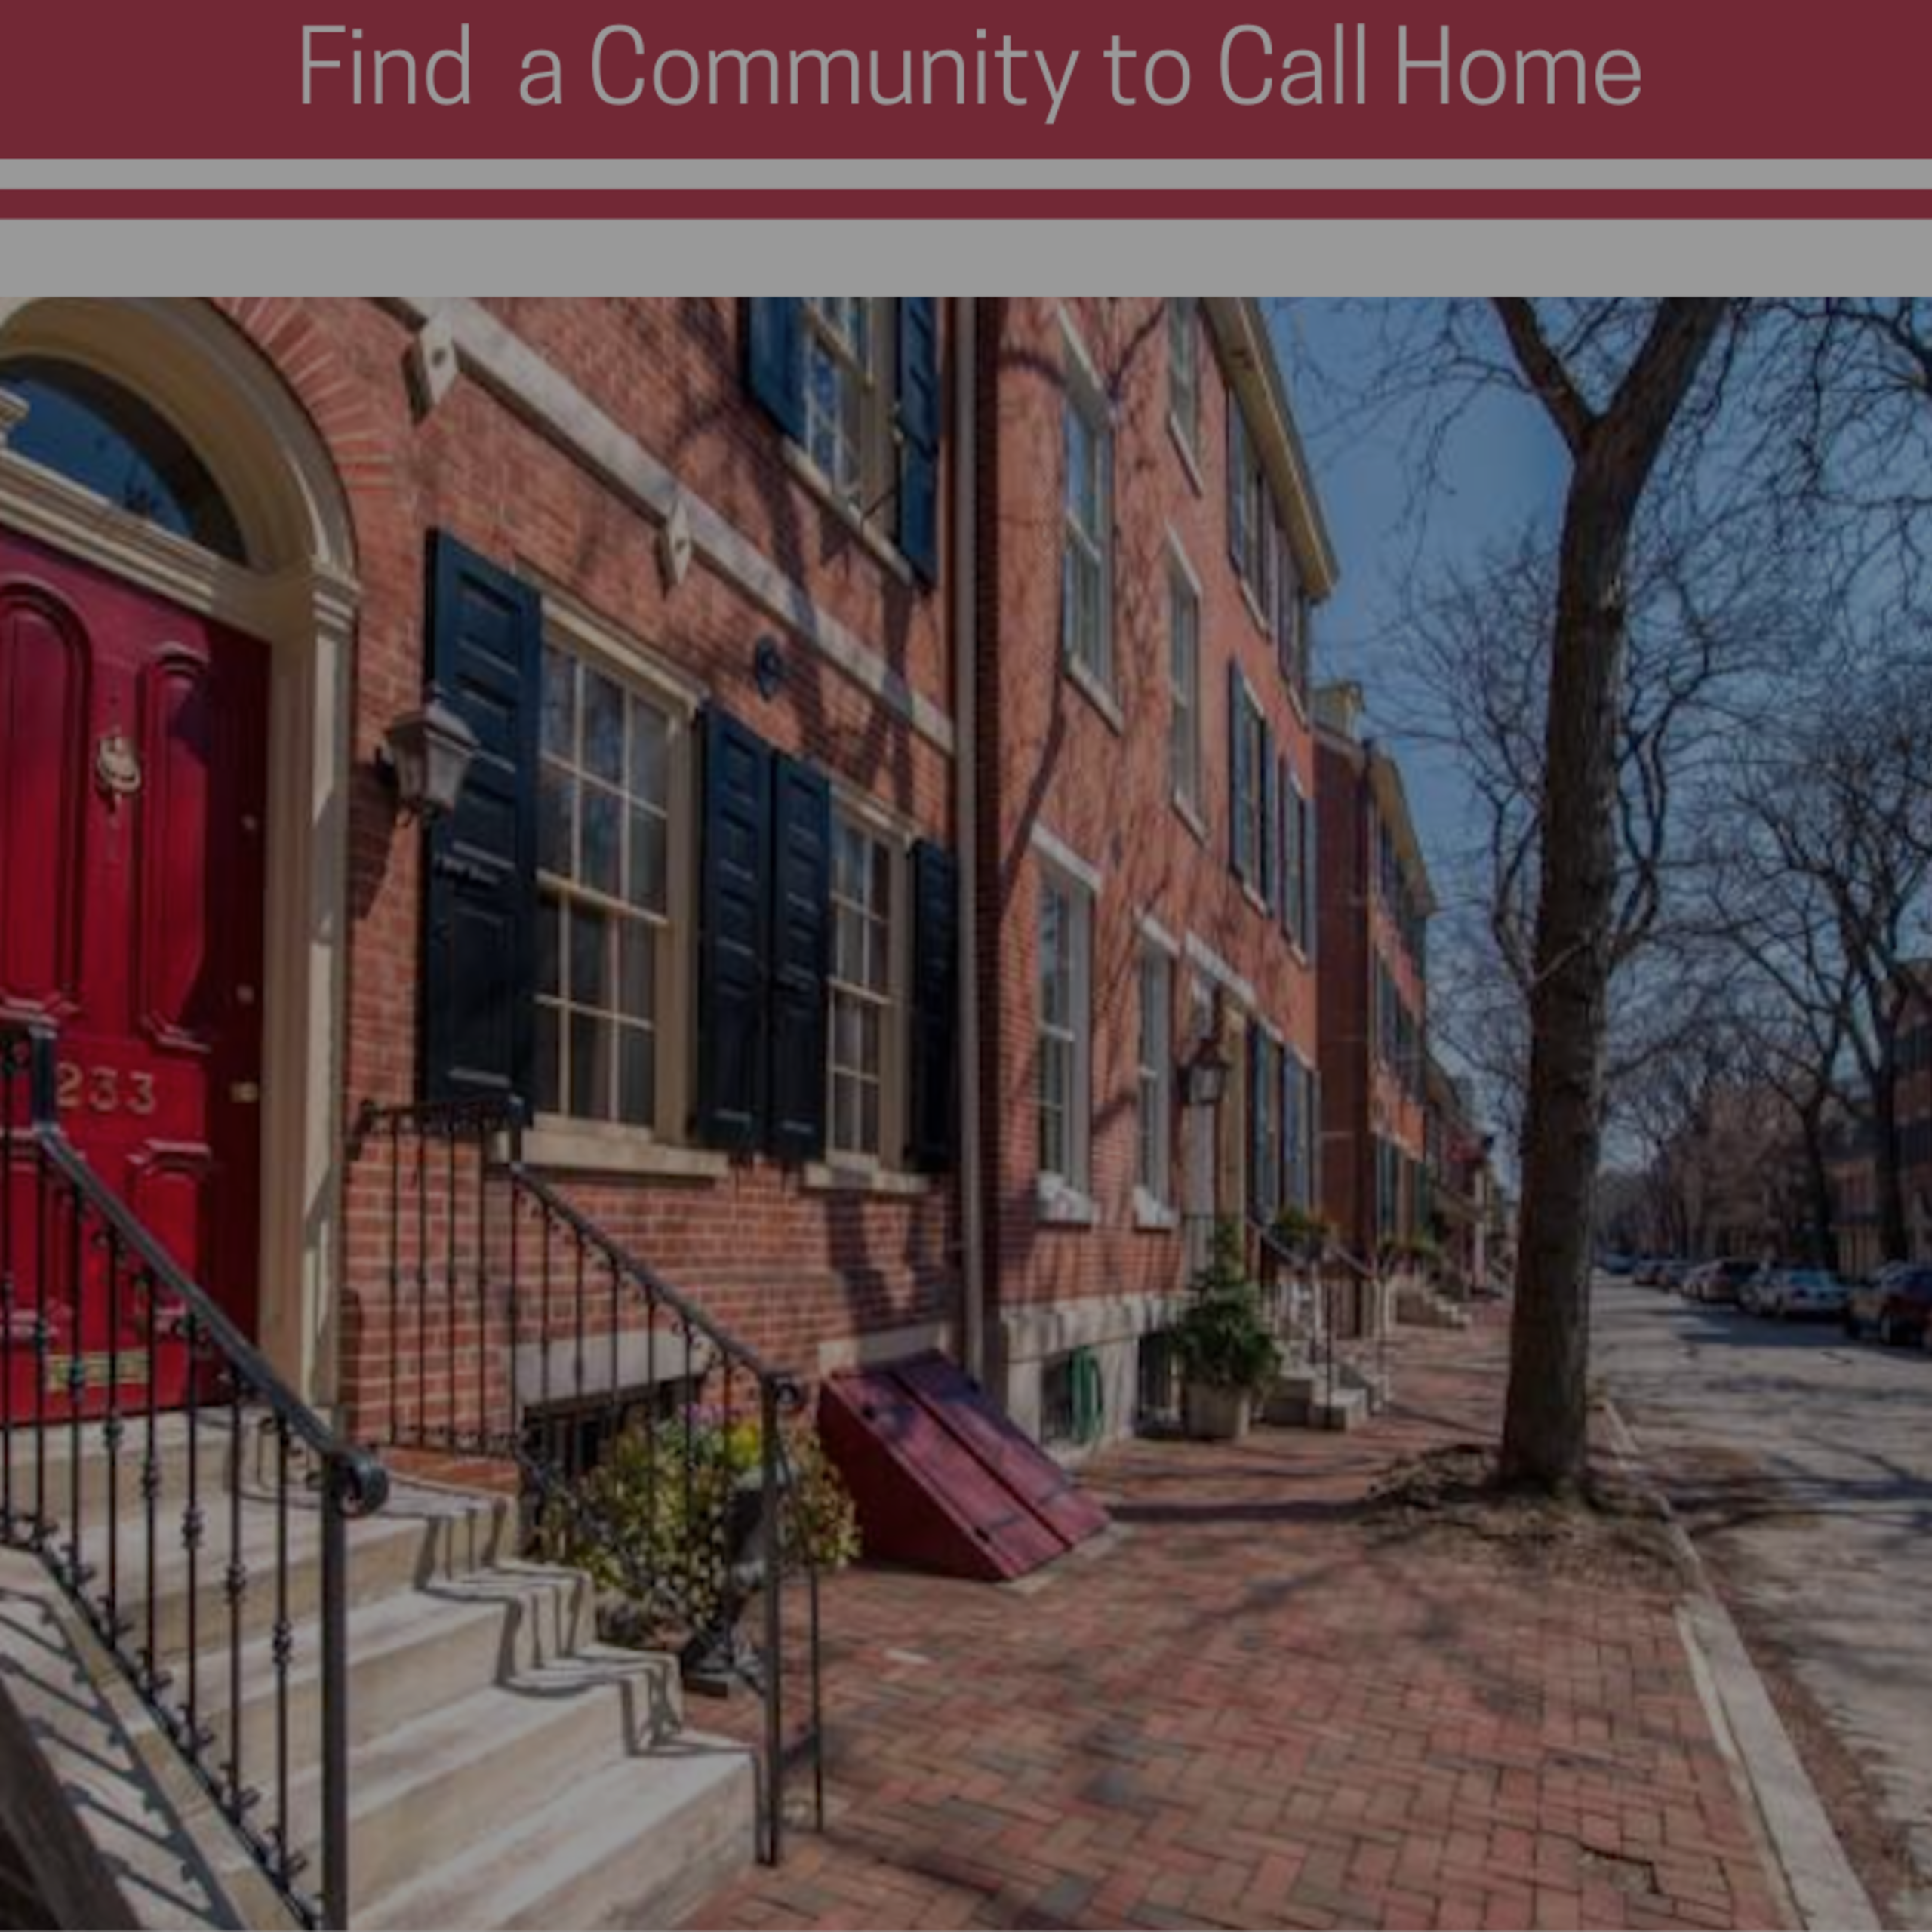 Find a Community to Call Home